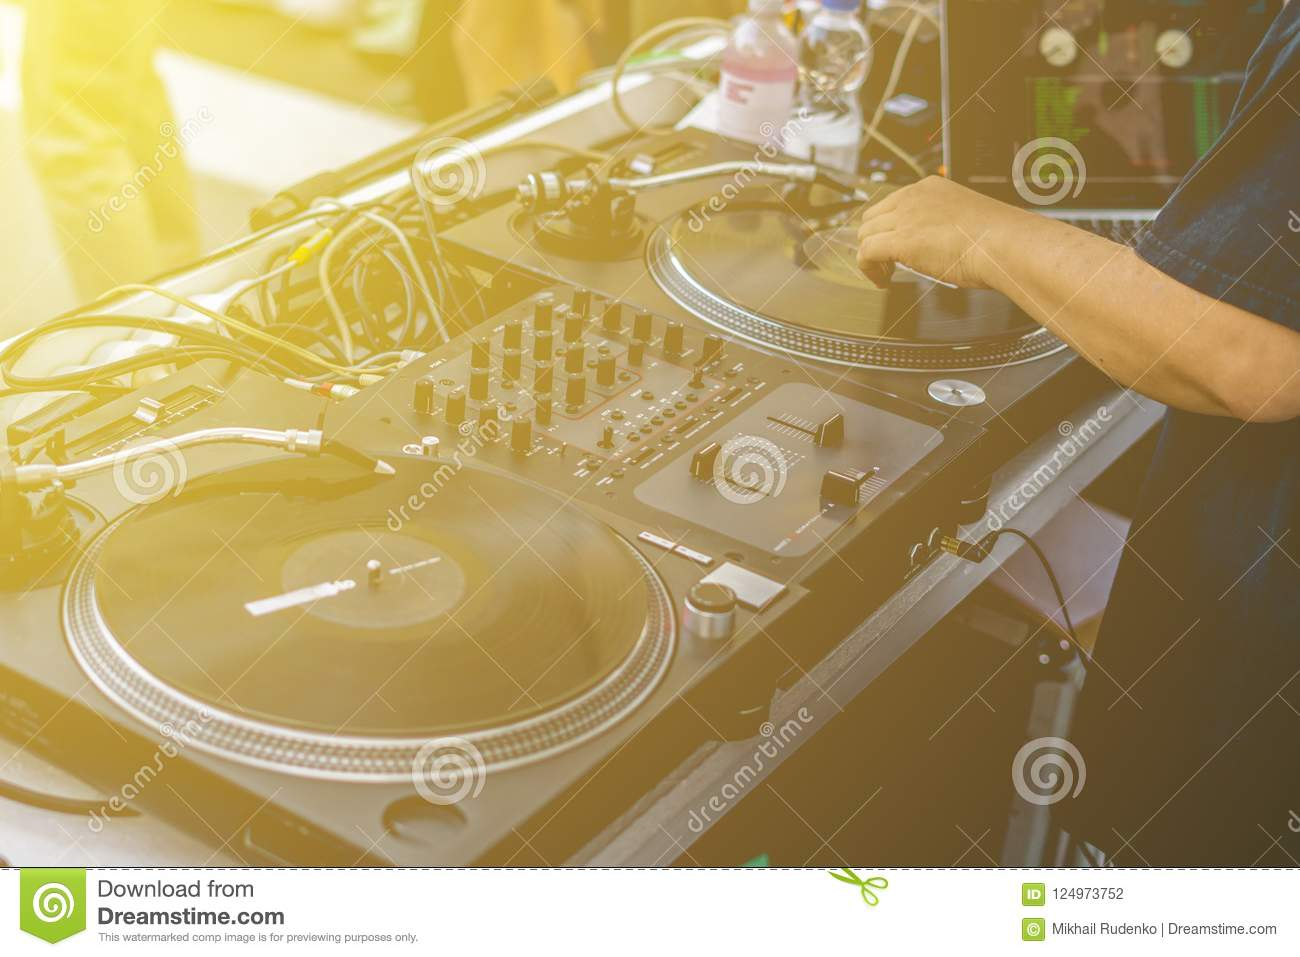 Dj Hands Play Music Vibes On A Summer Beach Party Using A Vintage